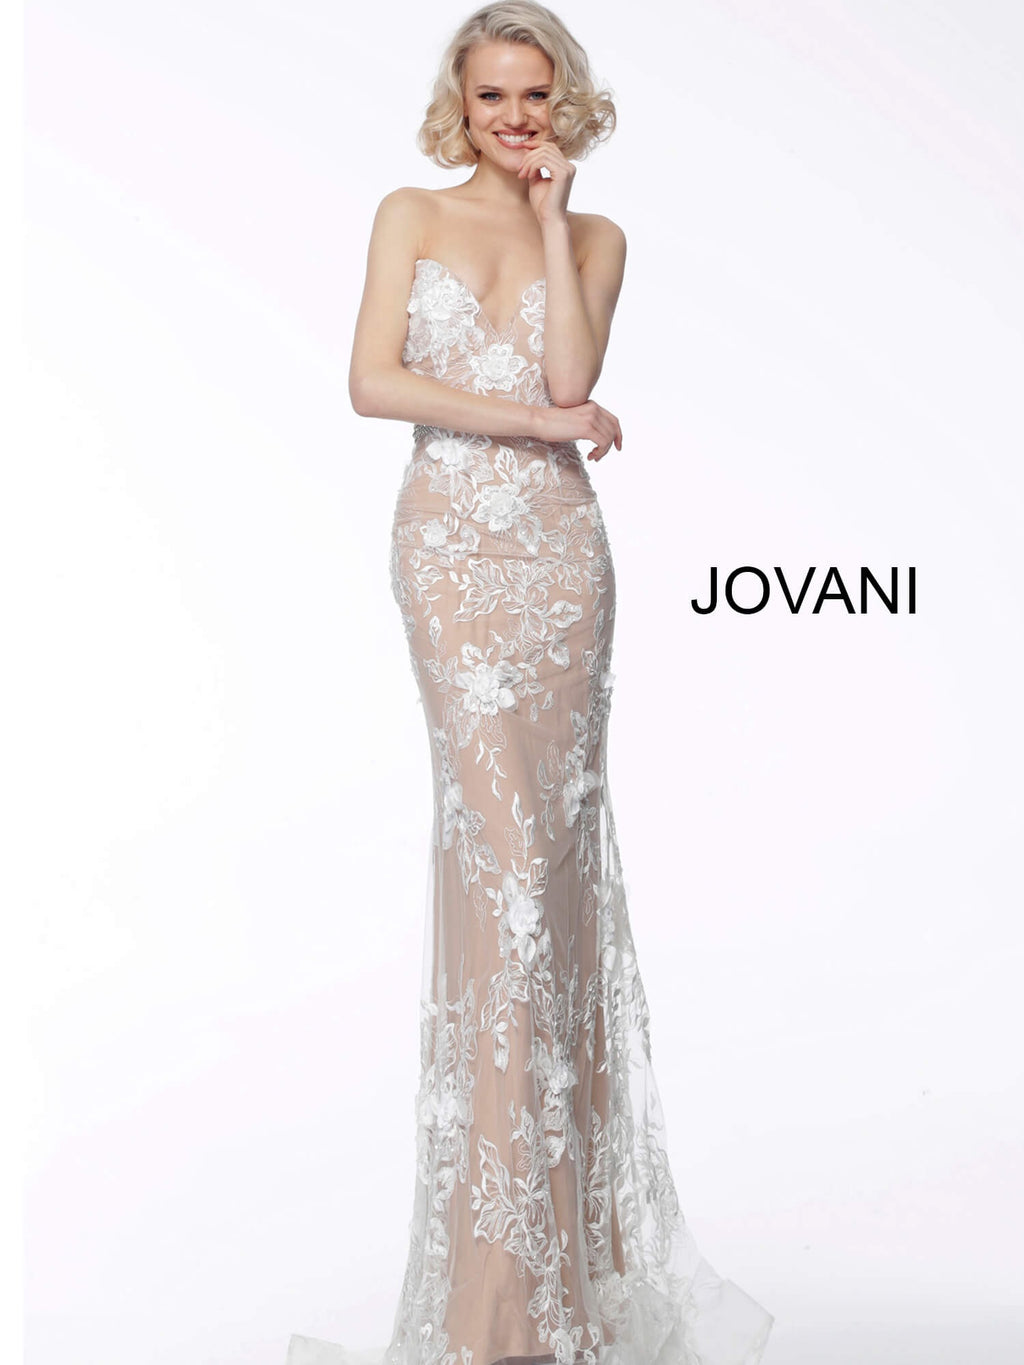 JOVANI 64031 Floral Appliqué Strapless Dress - CYC Boutique